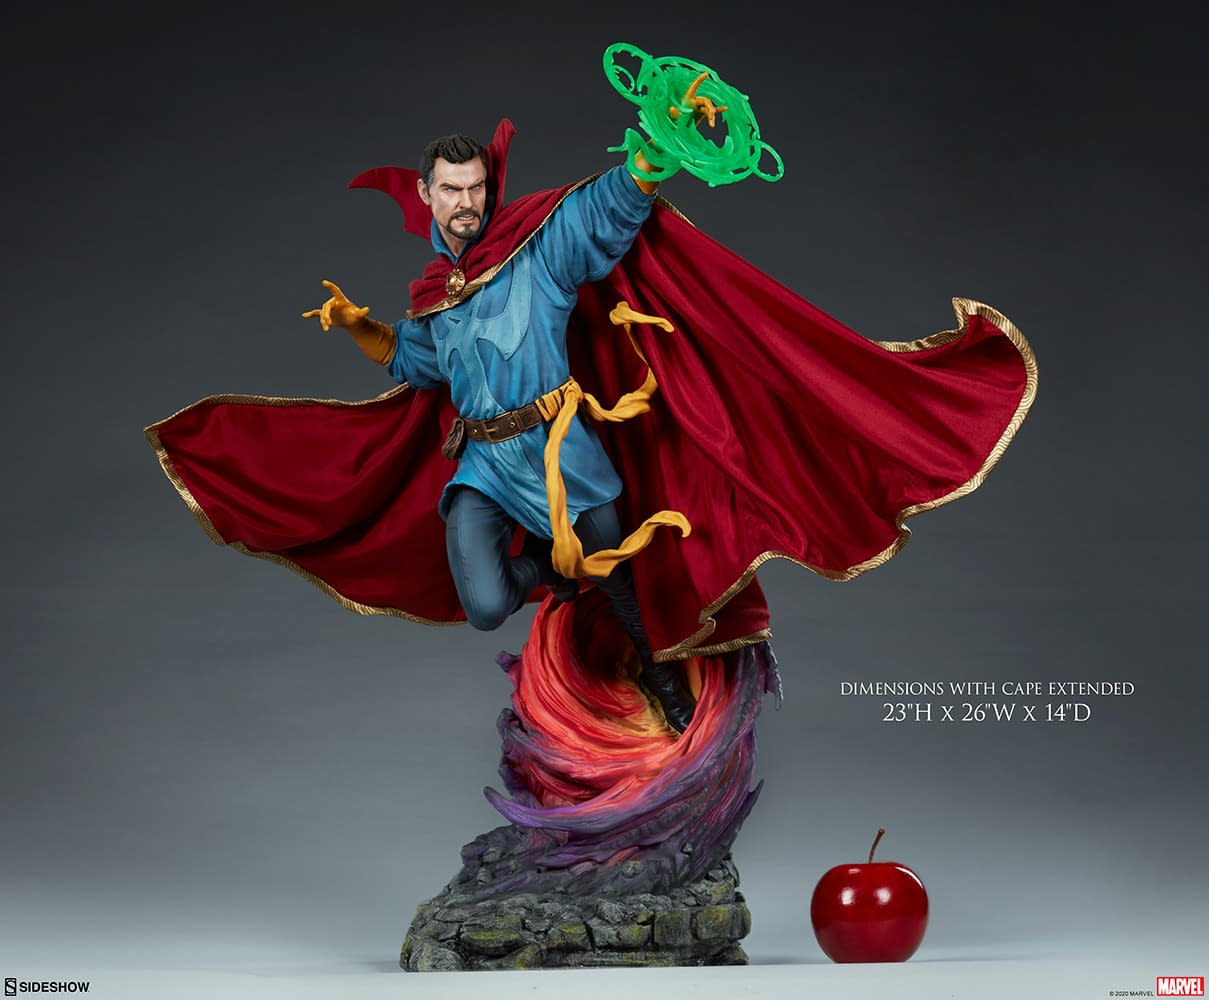 Doctor Strange Casts a Spell With New Statue From Sideshow Collectibles